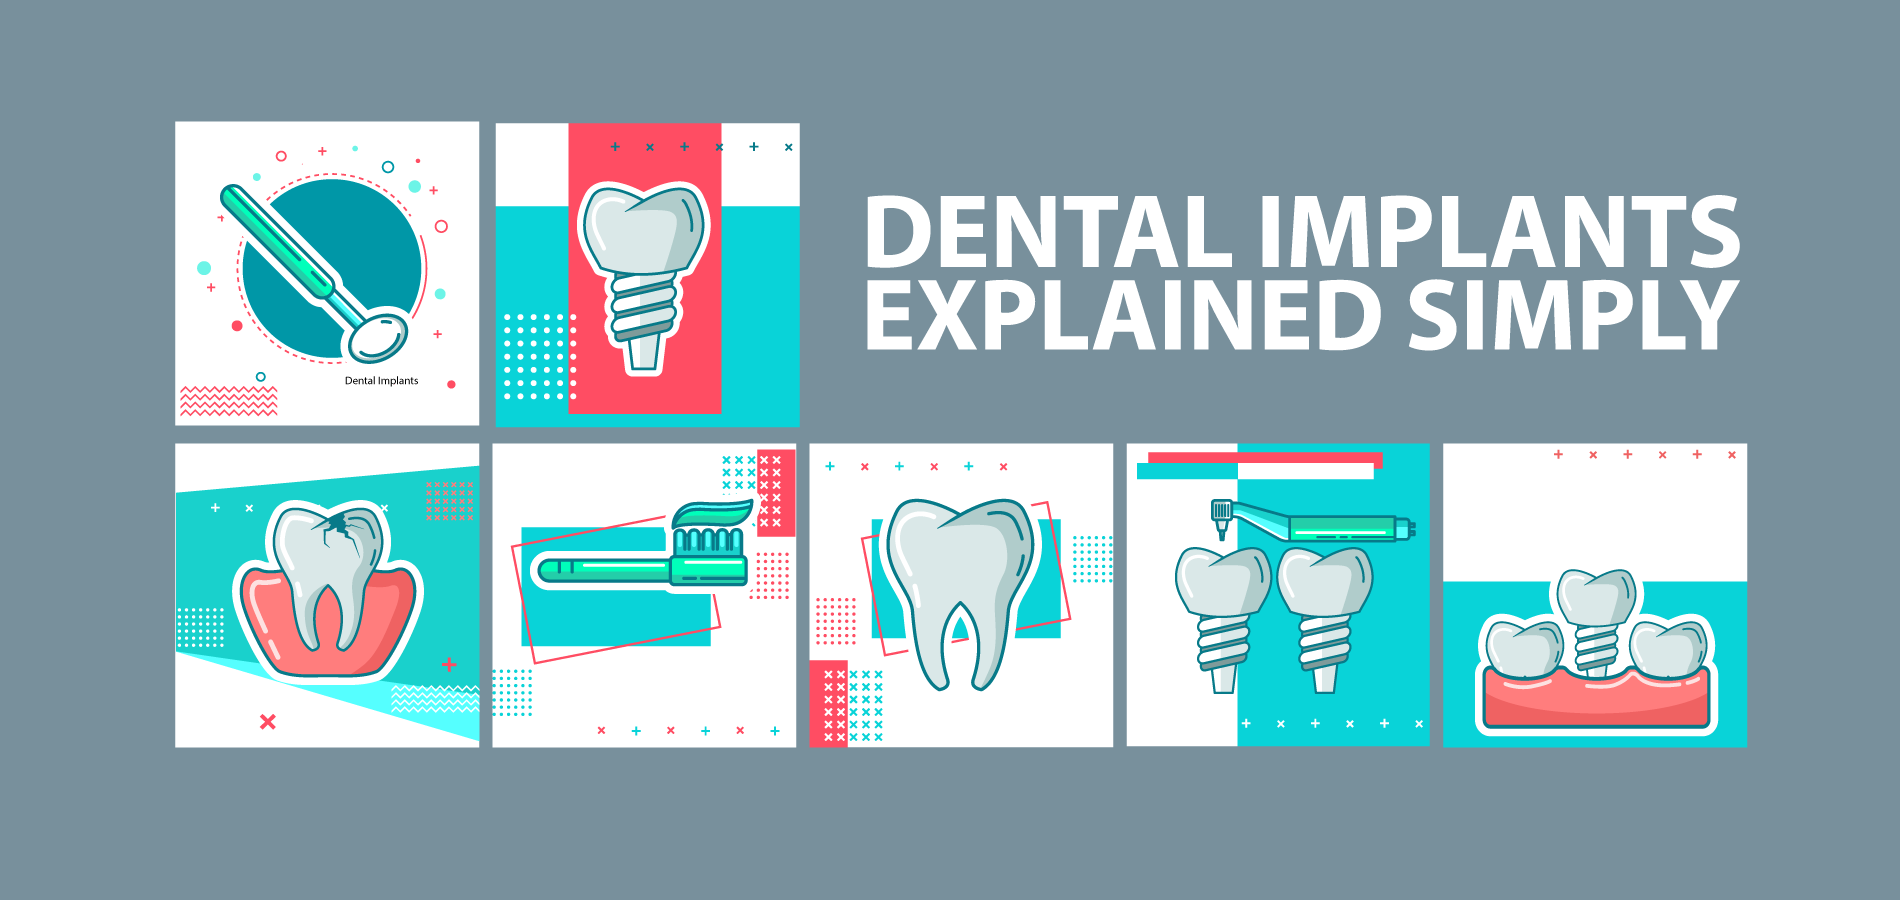 What Is The Cost Of Dental Implants In Canada